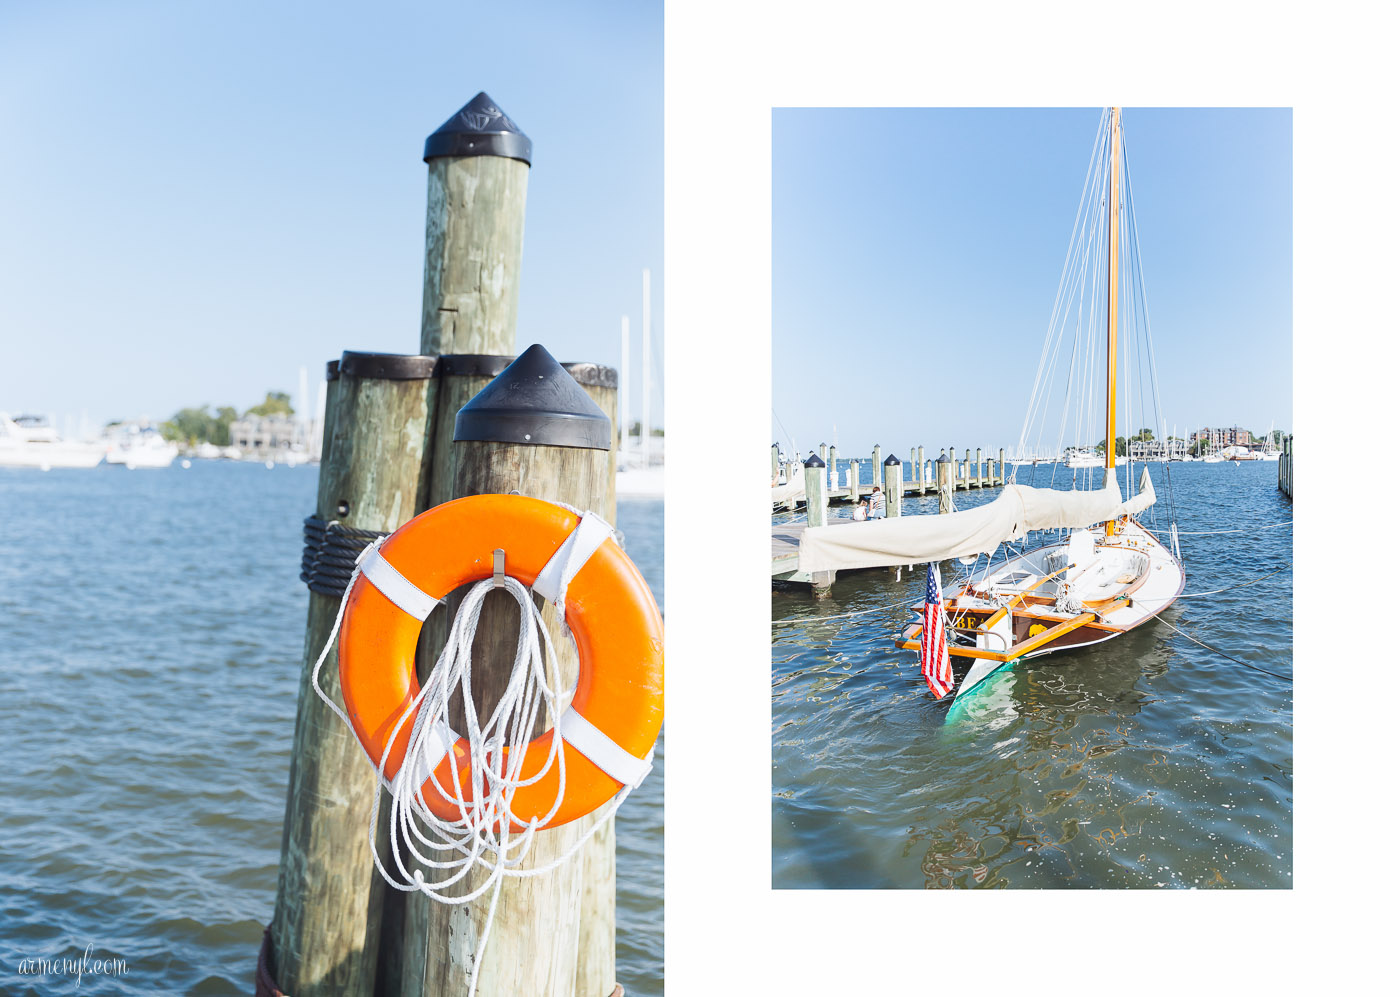 Annapolis Maryland boats and city dock on Ego Alley photographed by Armenyl